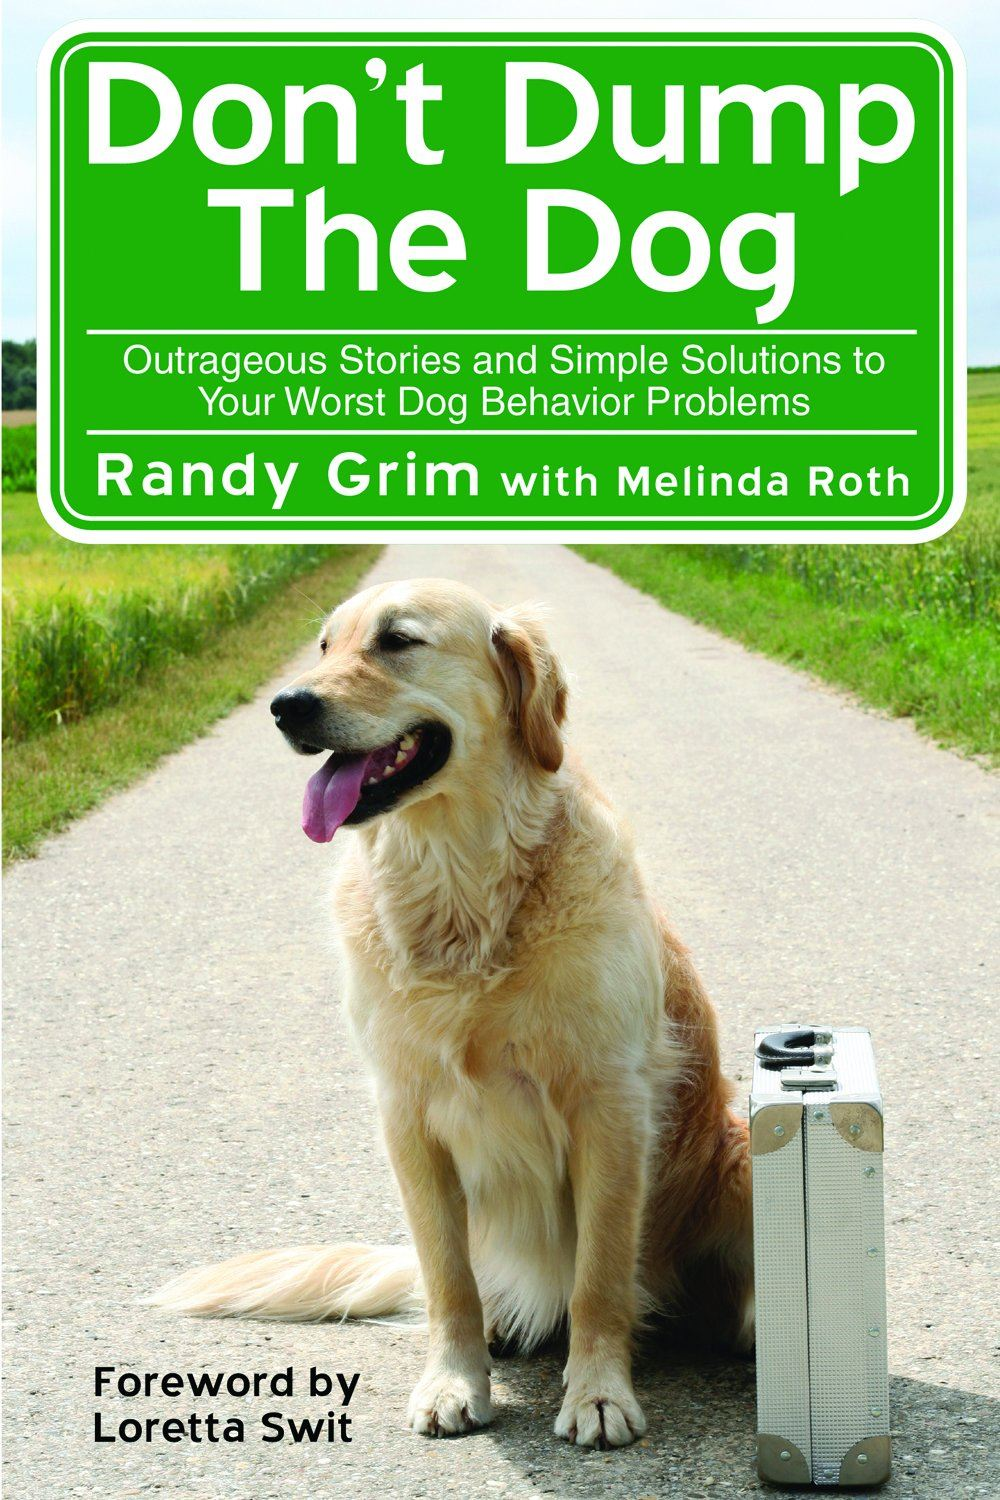 Don't Dump The Dog: Outrageous Stories and Simple Solutions to Your Worst Dog Behavior Problems By: Randy Grim, Melinda Roth